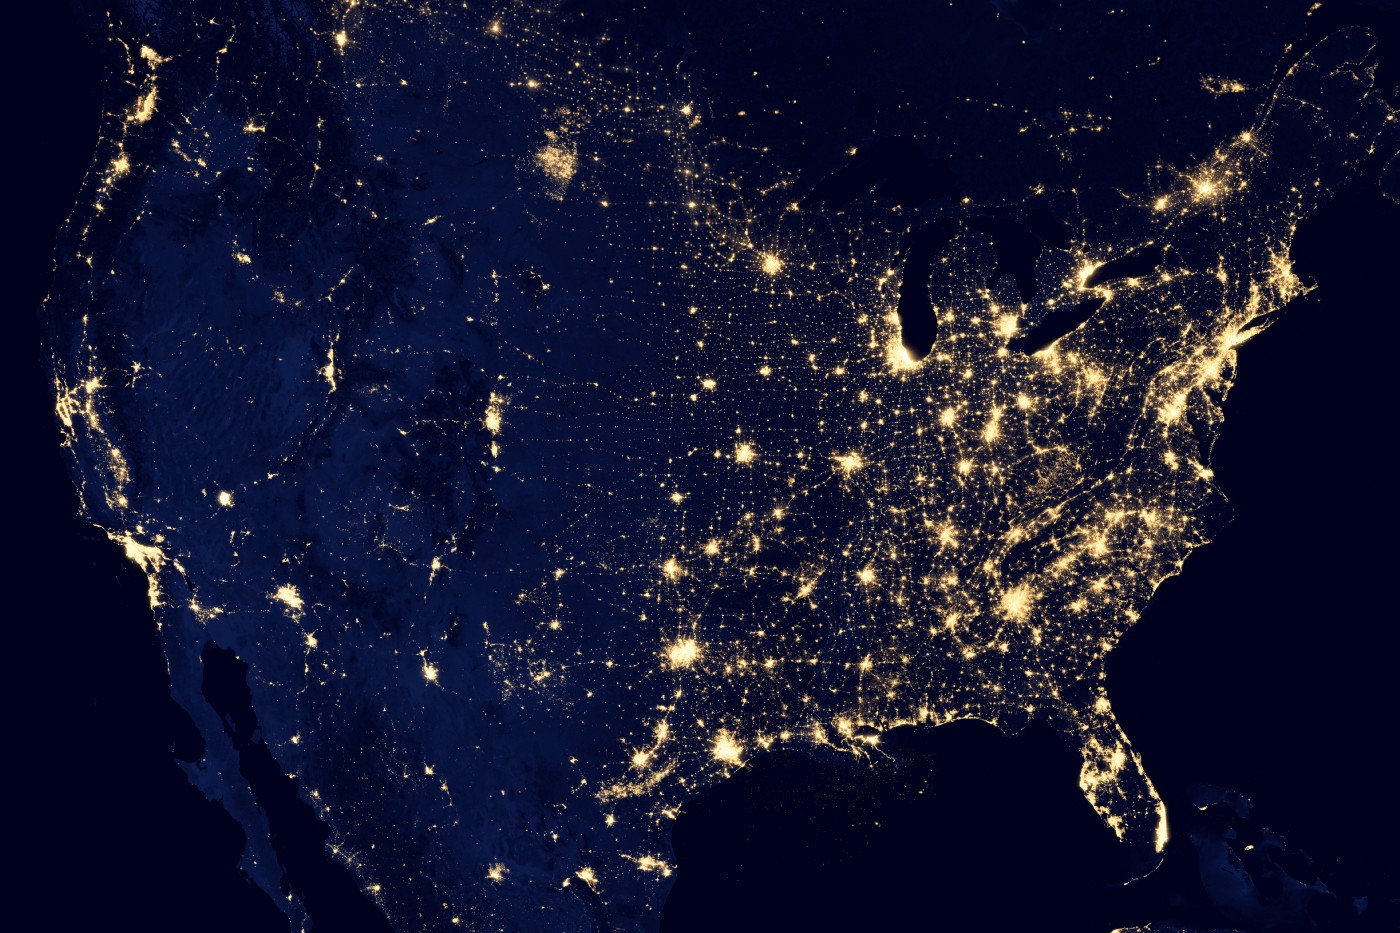 An aerial shot of the United States, showing the most populated areas lit up by lights.